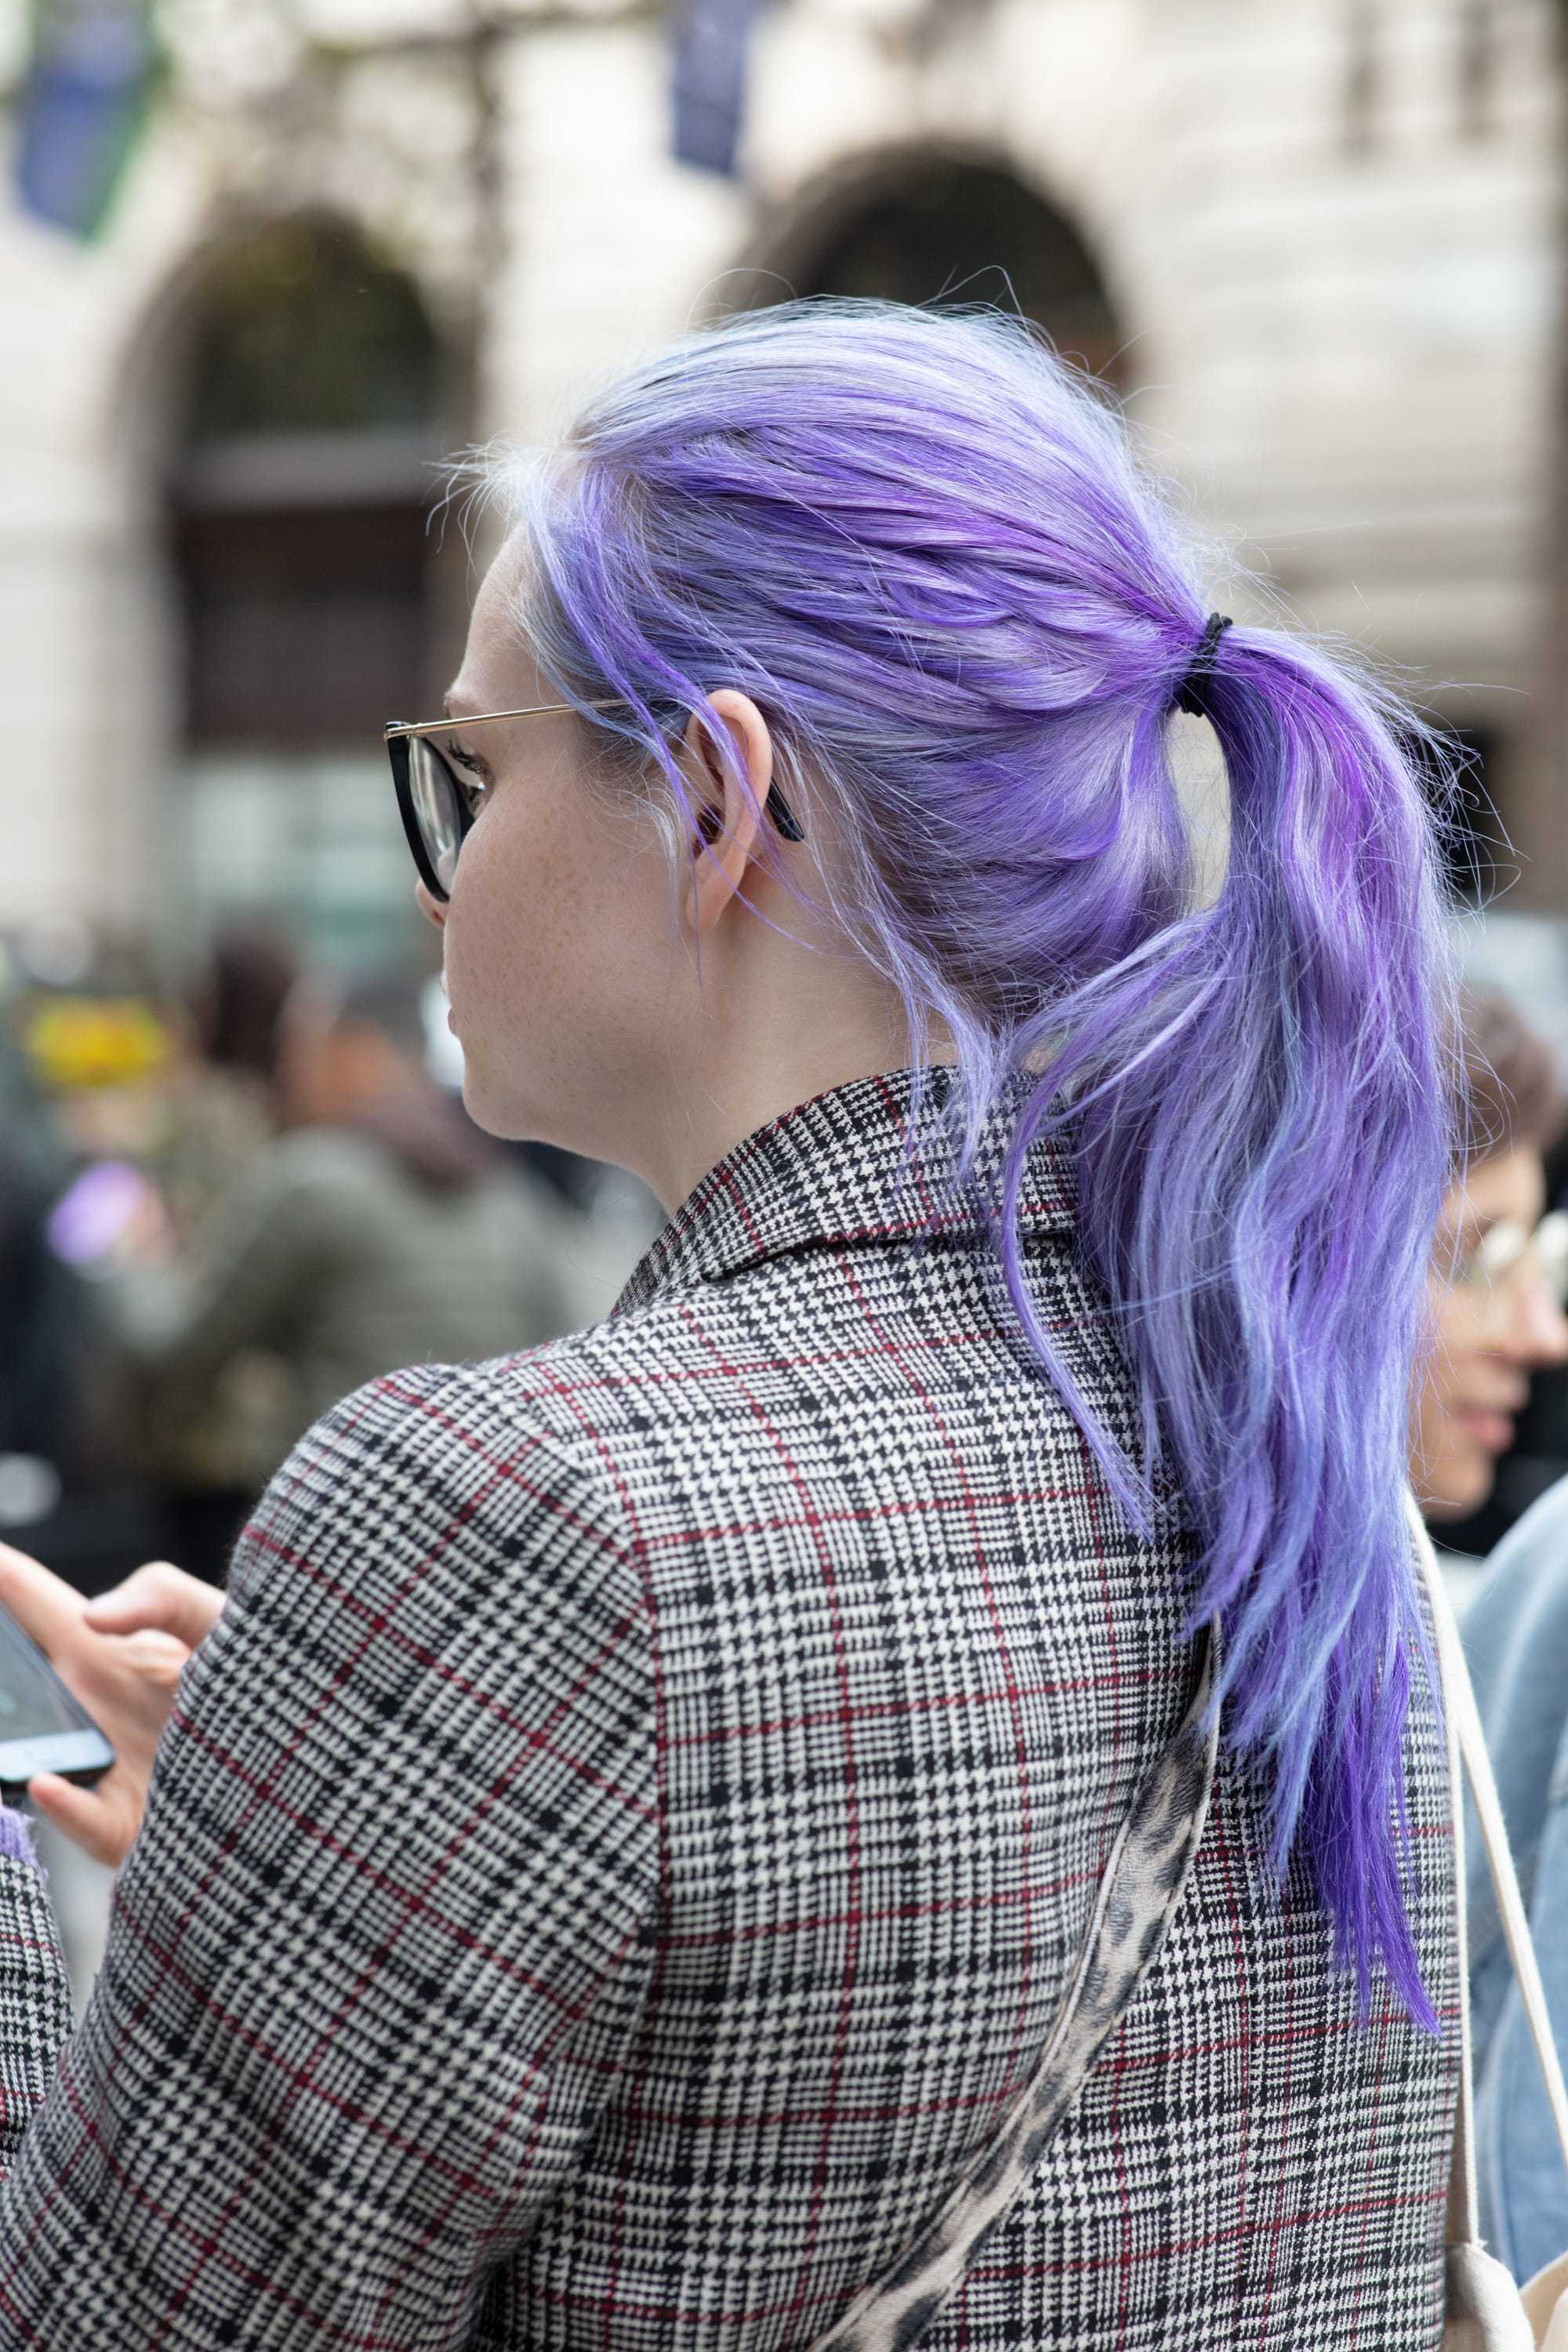 Best shampoo for coloured hair: Backshot of woman with long purple hair styled into a ponytail, wearing a checked blazer and posing on the street for an All Things hair street shot